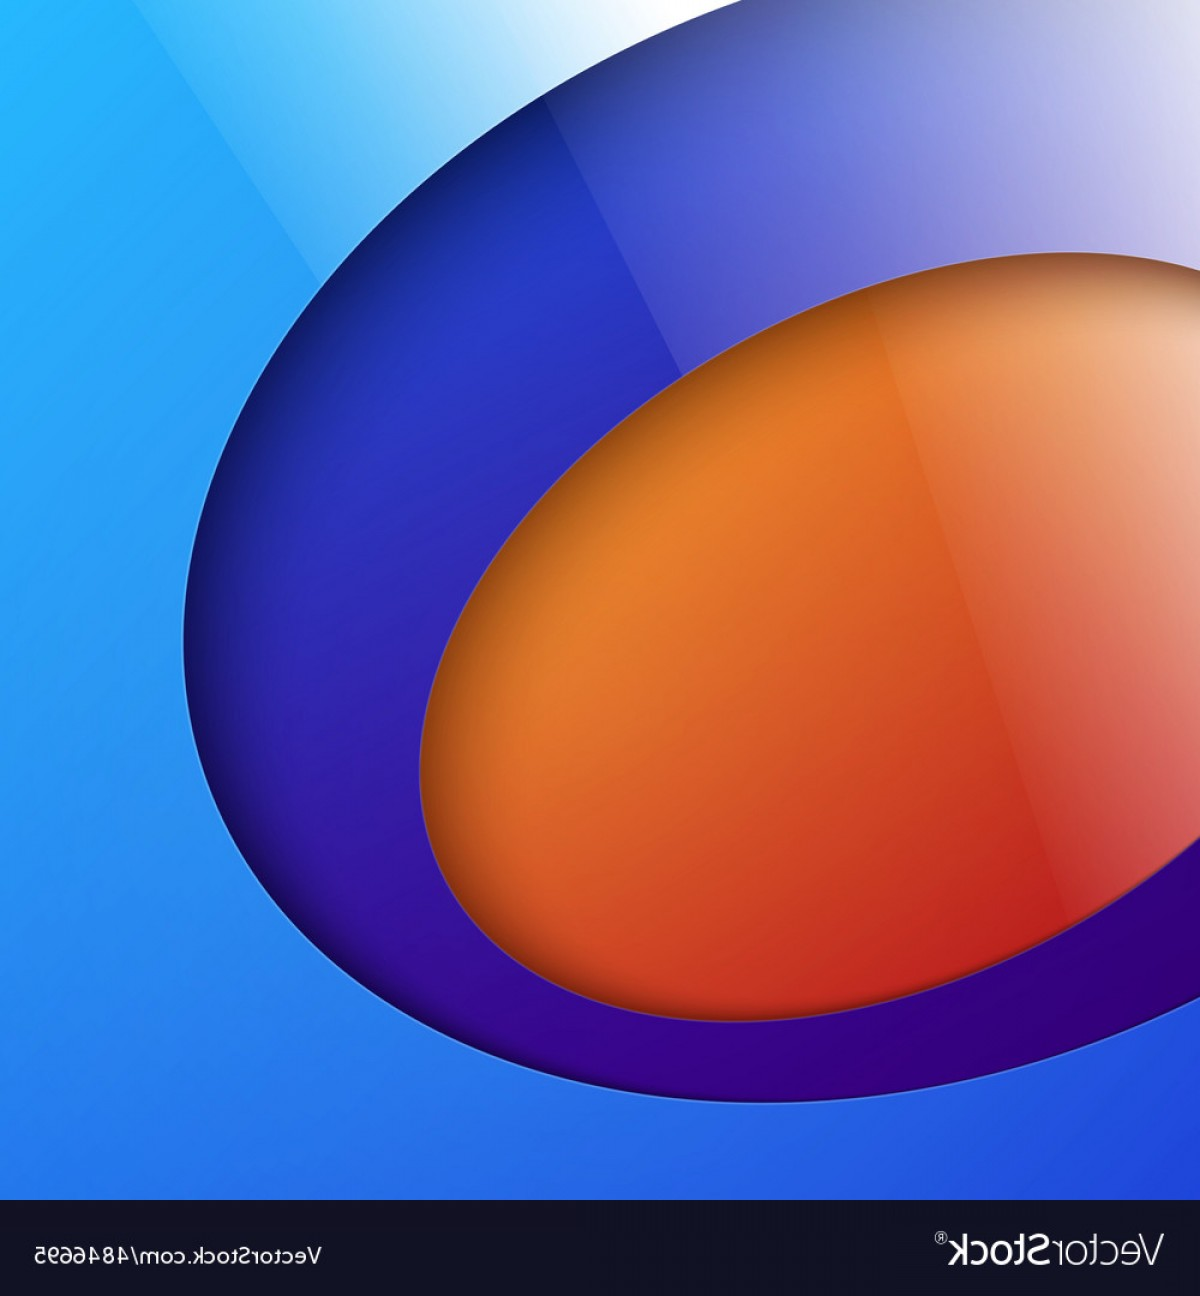 Blue And Orange Circle Vector: Cut Out Shiny Blue And Orange Circle Shapes Vector